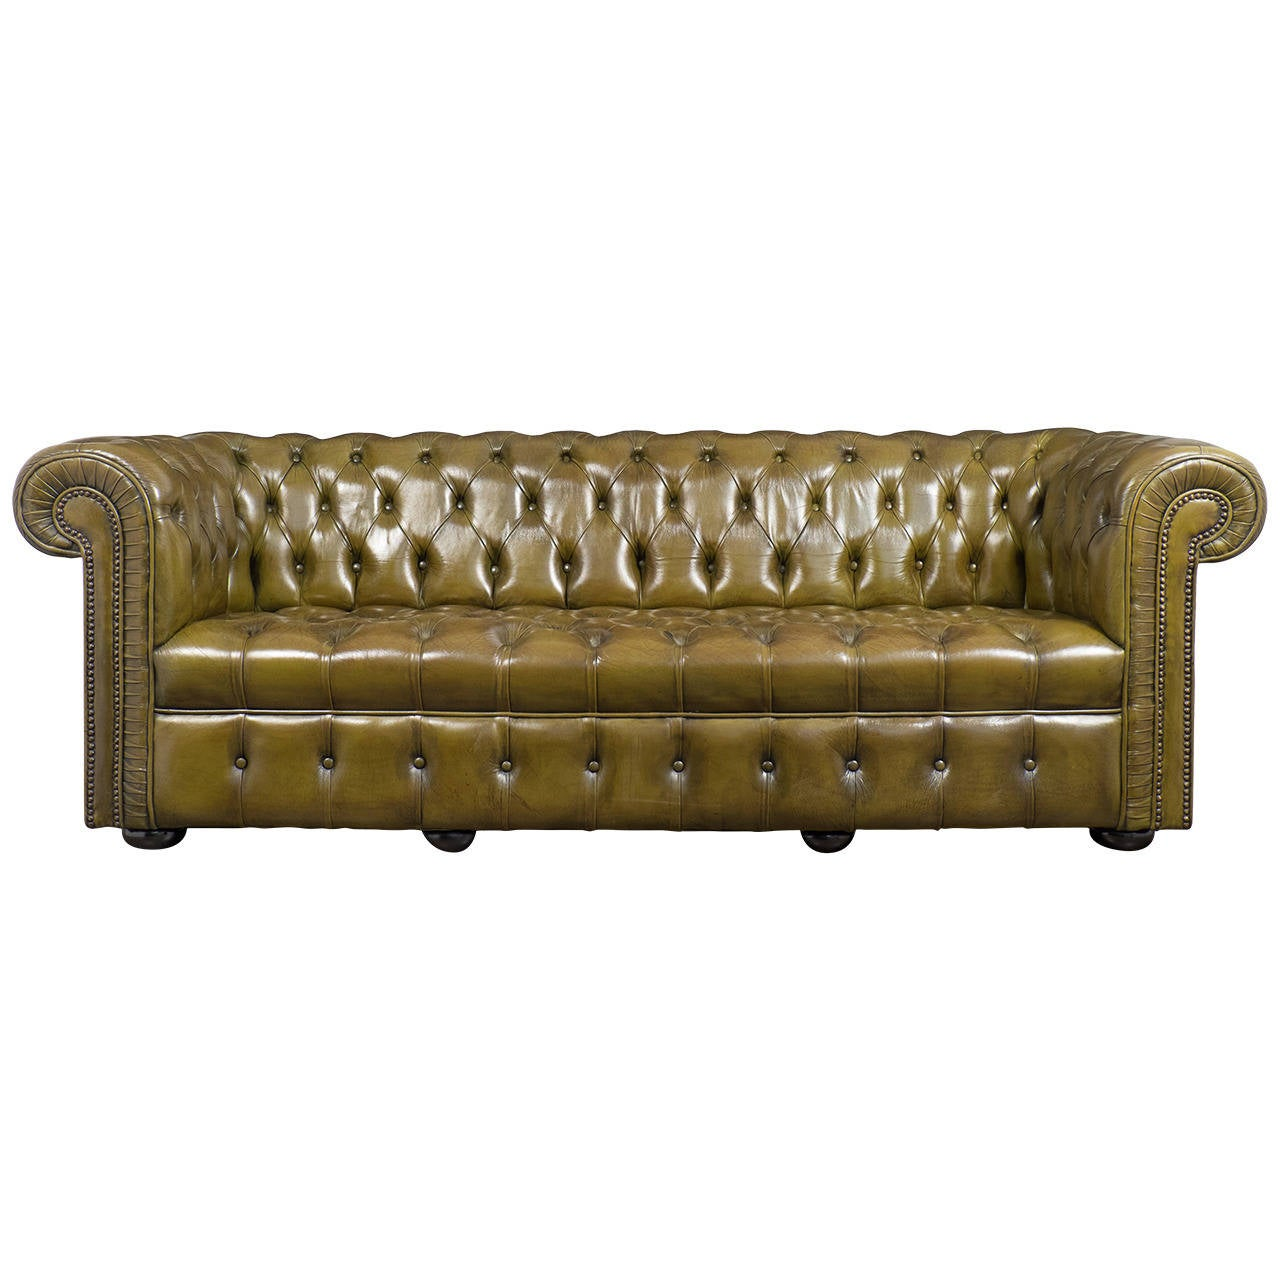 Blue leather chesterfield sofa at 1stdibs - Vintage Green Leather Chesterfield Sofa 1